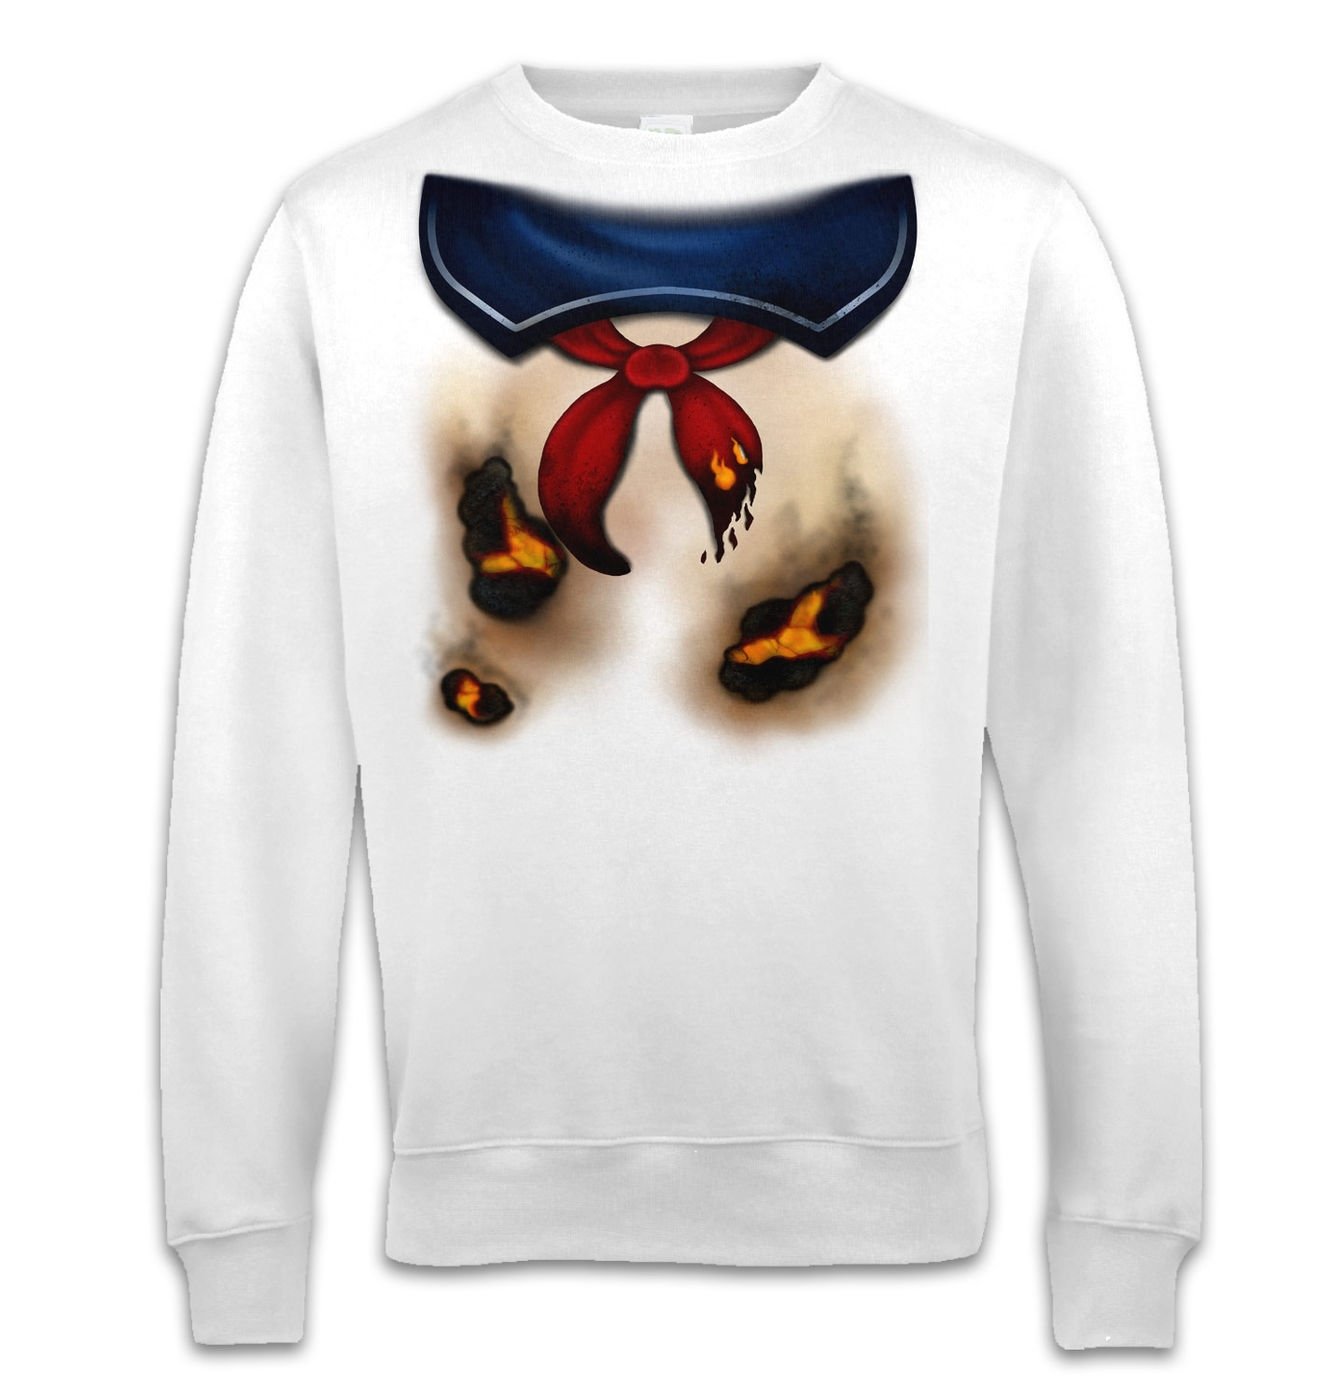 Marshmallow Man Costume adult sweatshirt